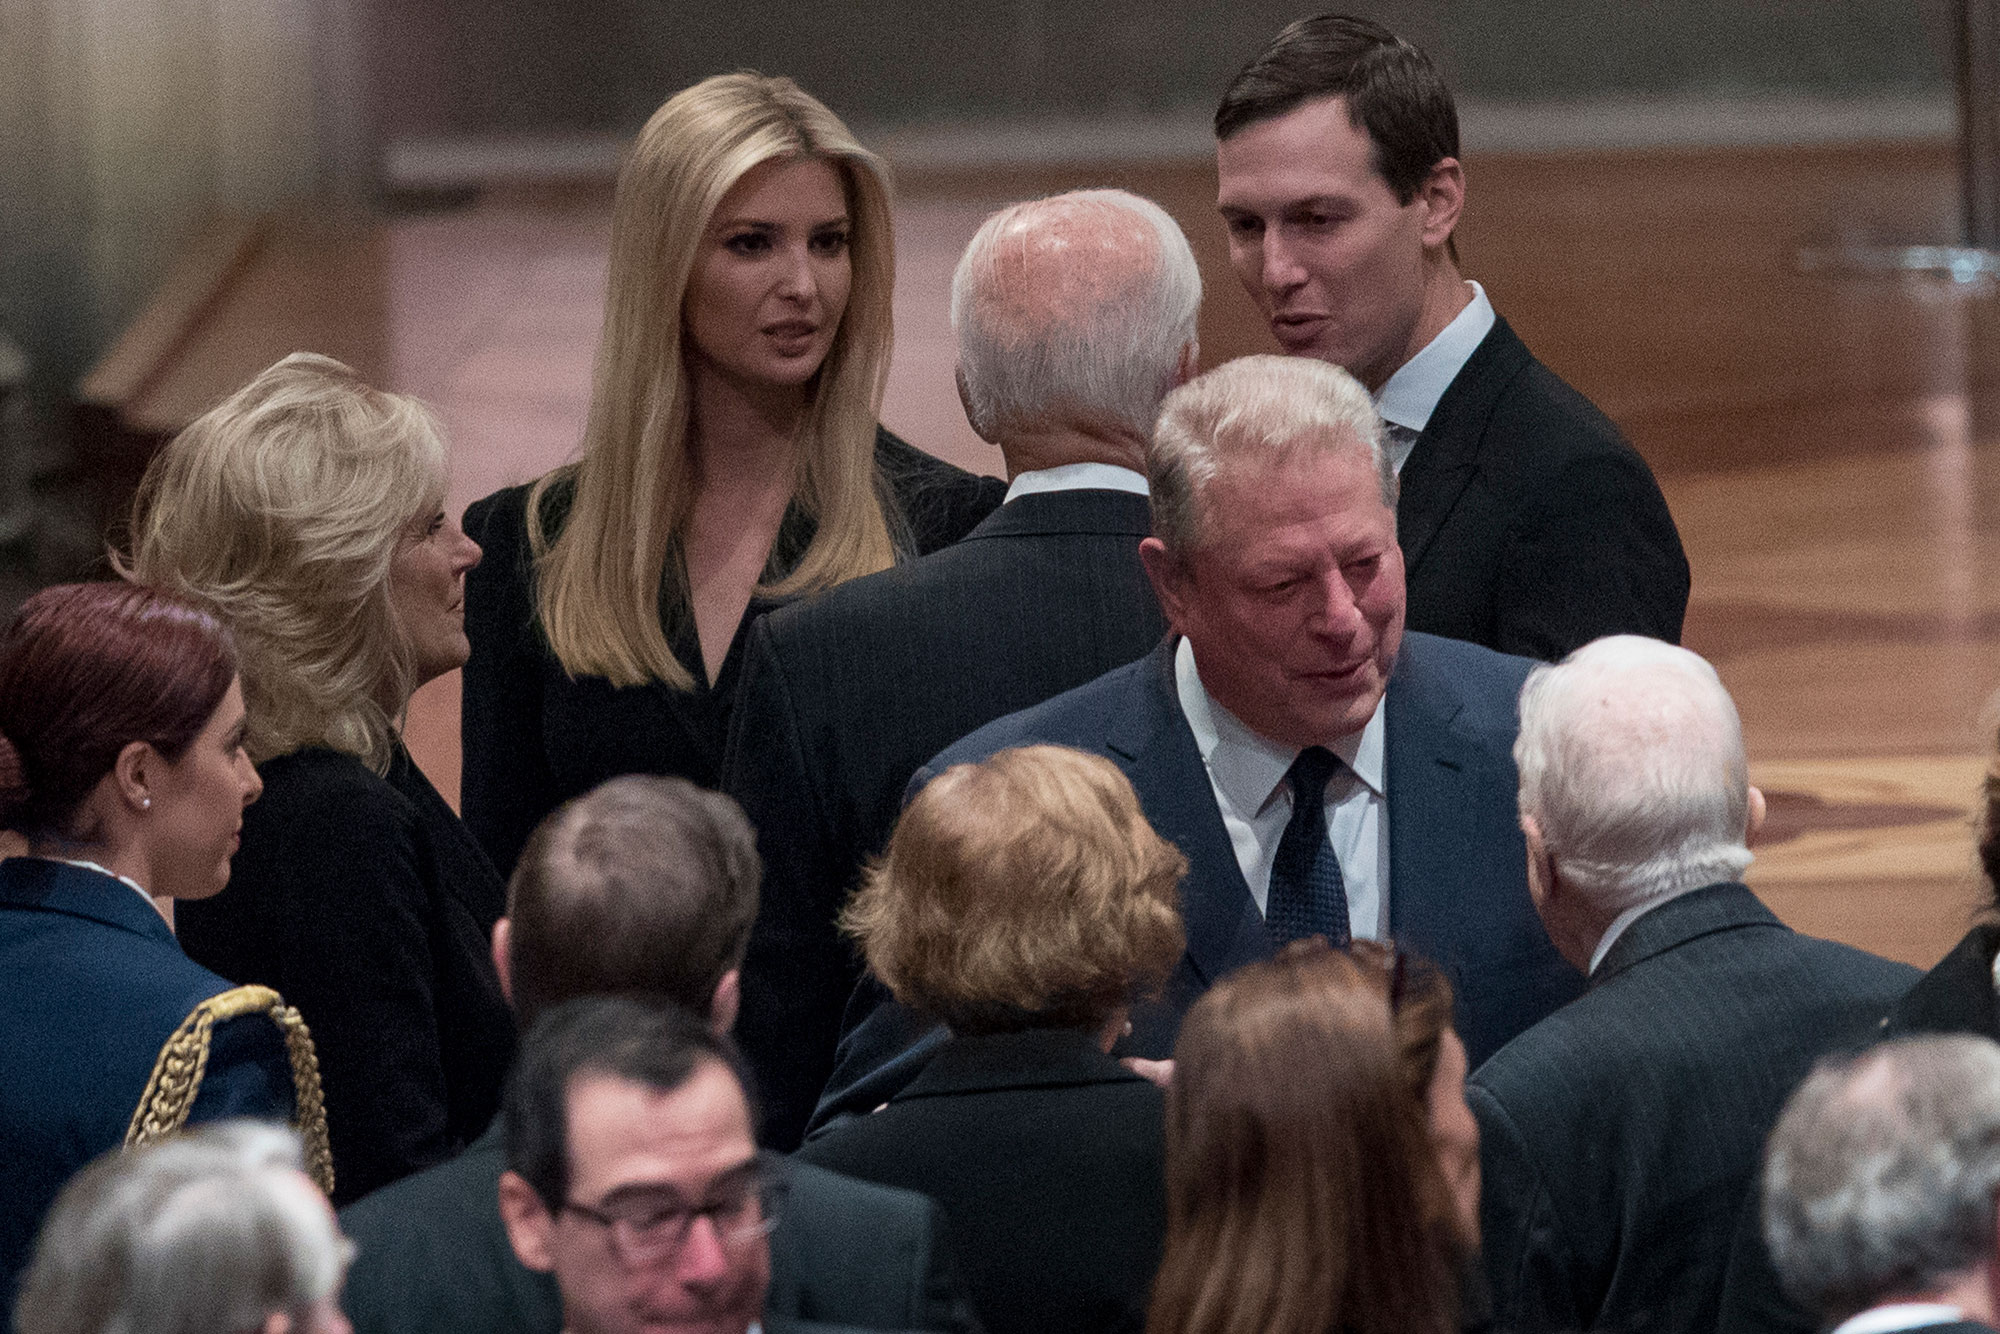 "<div class=""meta image-caption""><div class=""origin-logo origin-image none""><span>none</span></div><span class=""caption-text"">Ivanka Trump and Jared Kushner speak with former VP Joe Biden and wife Jill, while former President Jimmy Carter (back turned) and wife Rosalynn speak with former VP Al Gore. (Andrew Harnik, Pool/AP Photo)</span></div>"